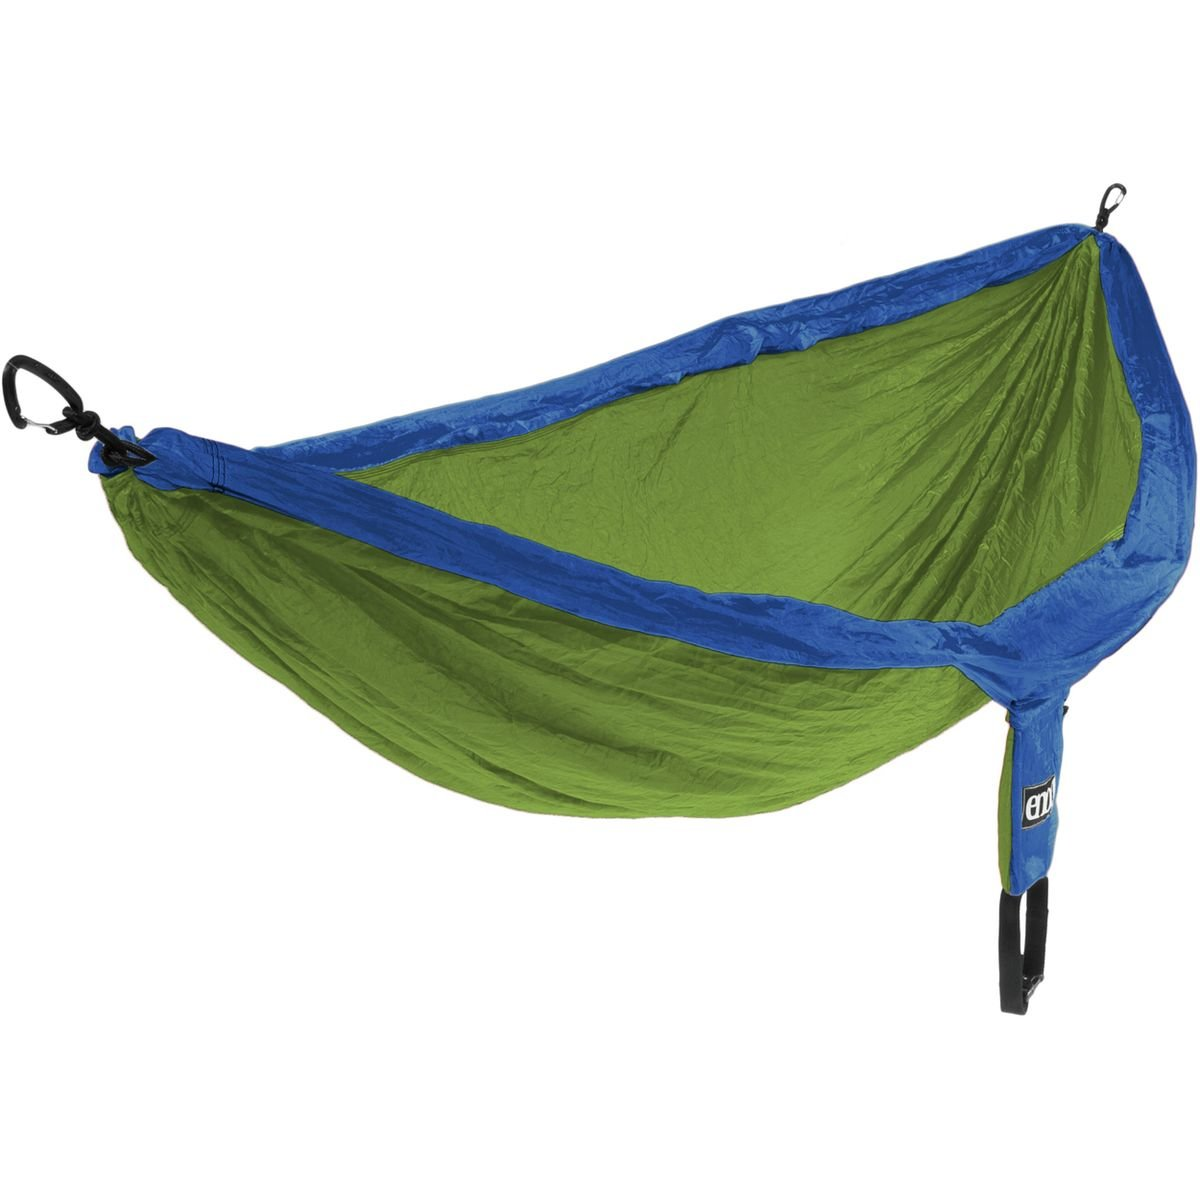 Eagles Nest Outfitters イーノDoublenestハンモック、ポータブルハンモック  ロイヤル/ライム B01IRVDFDW